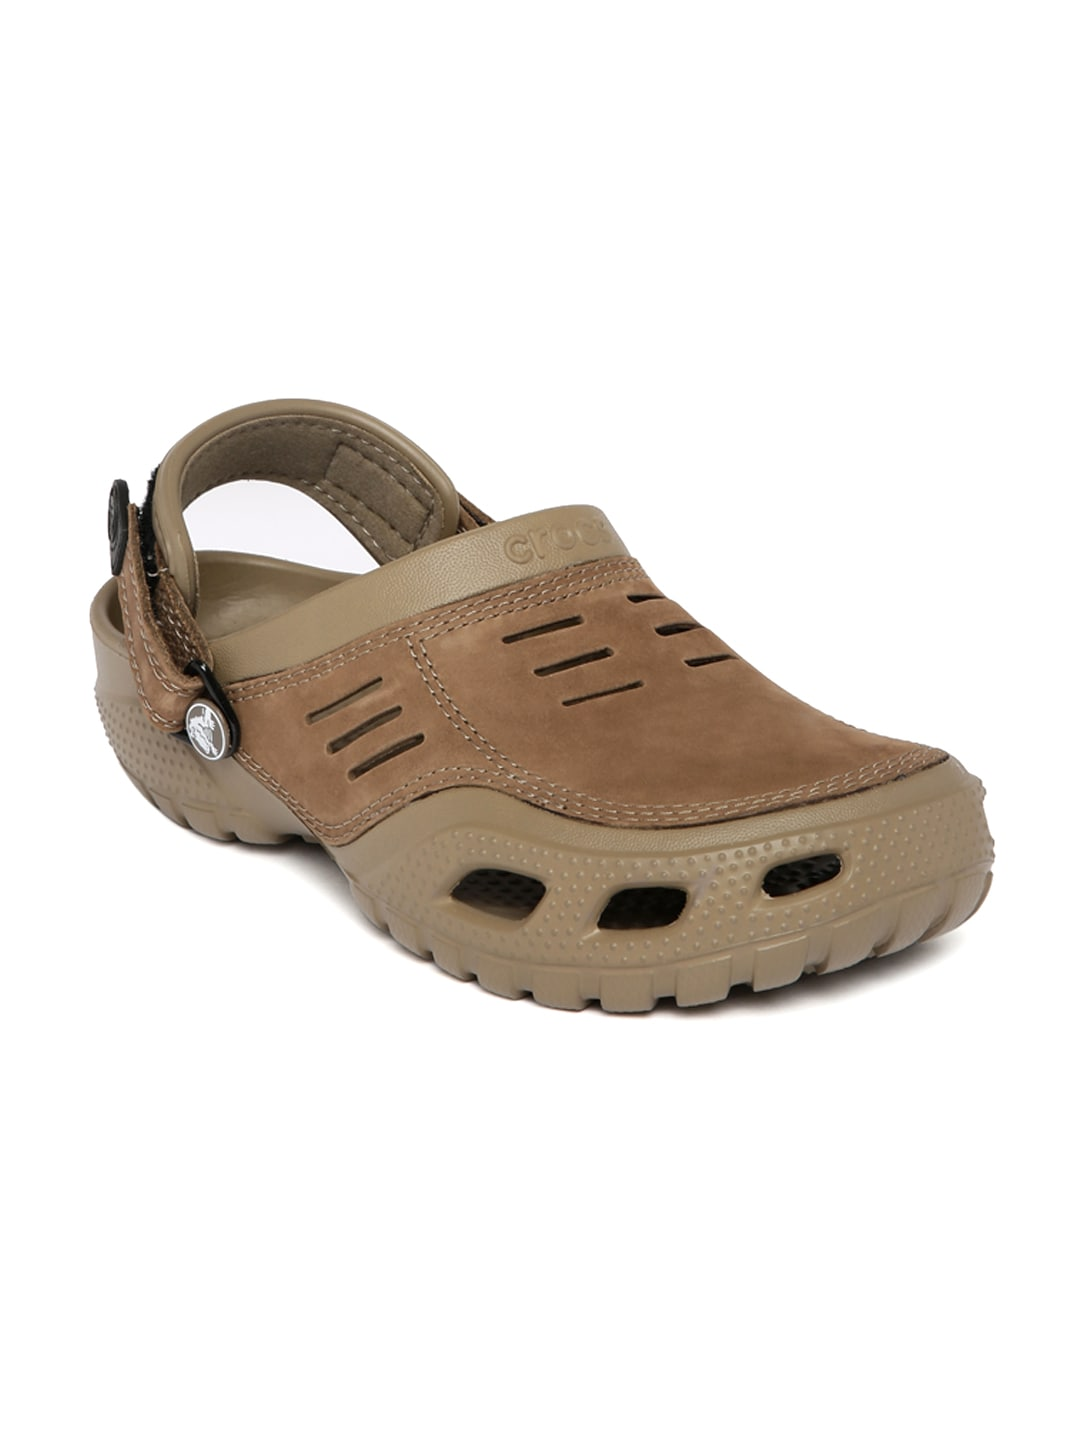 68292da84 Crocs 10931-24r-m10-khaki-coffee Men Khaki Yukon Sport Clogs- Price in India